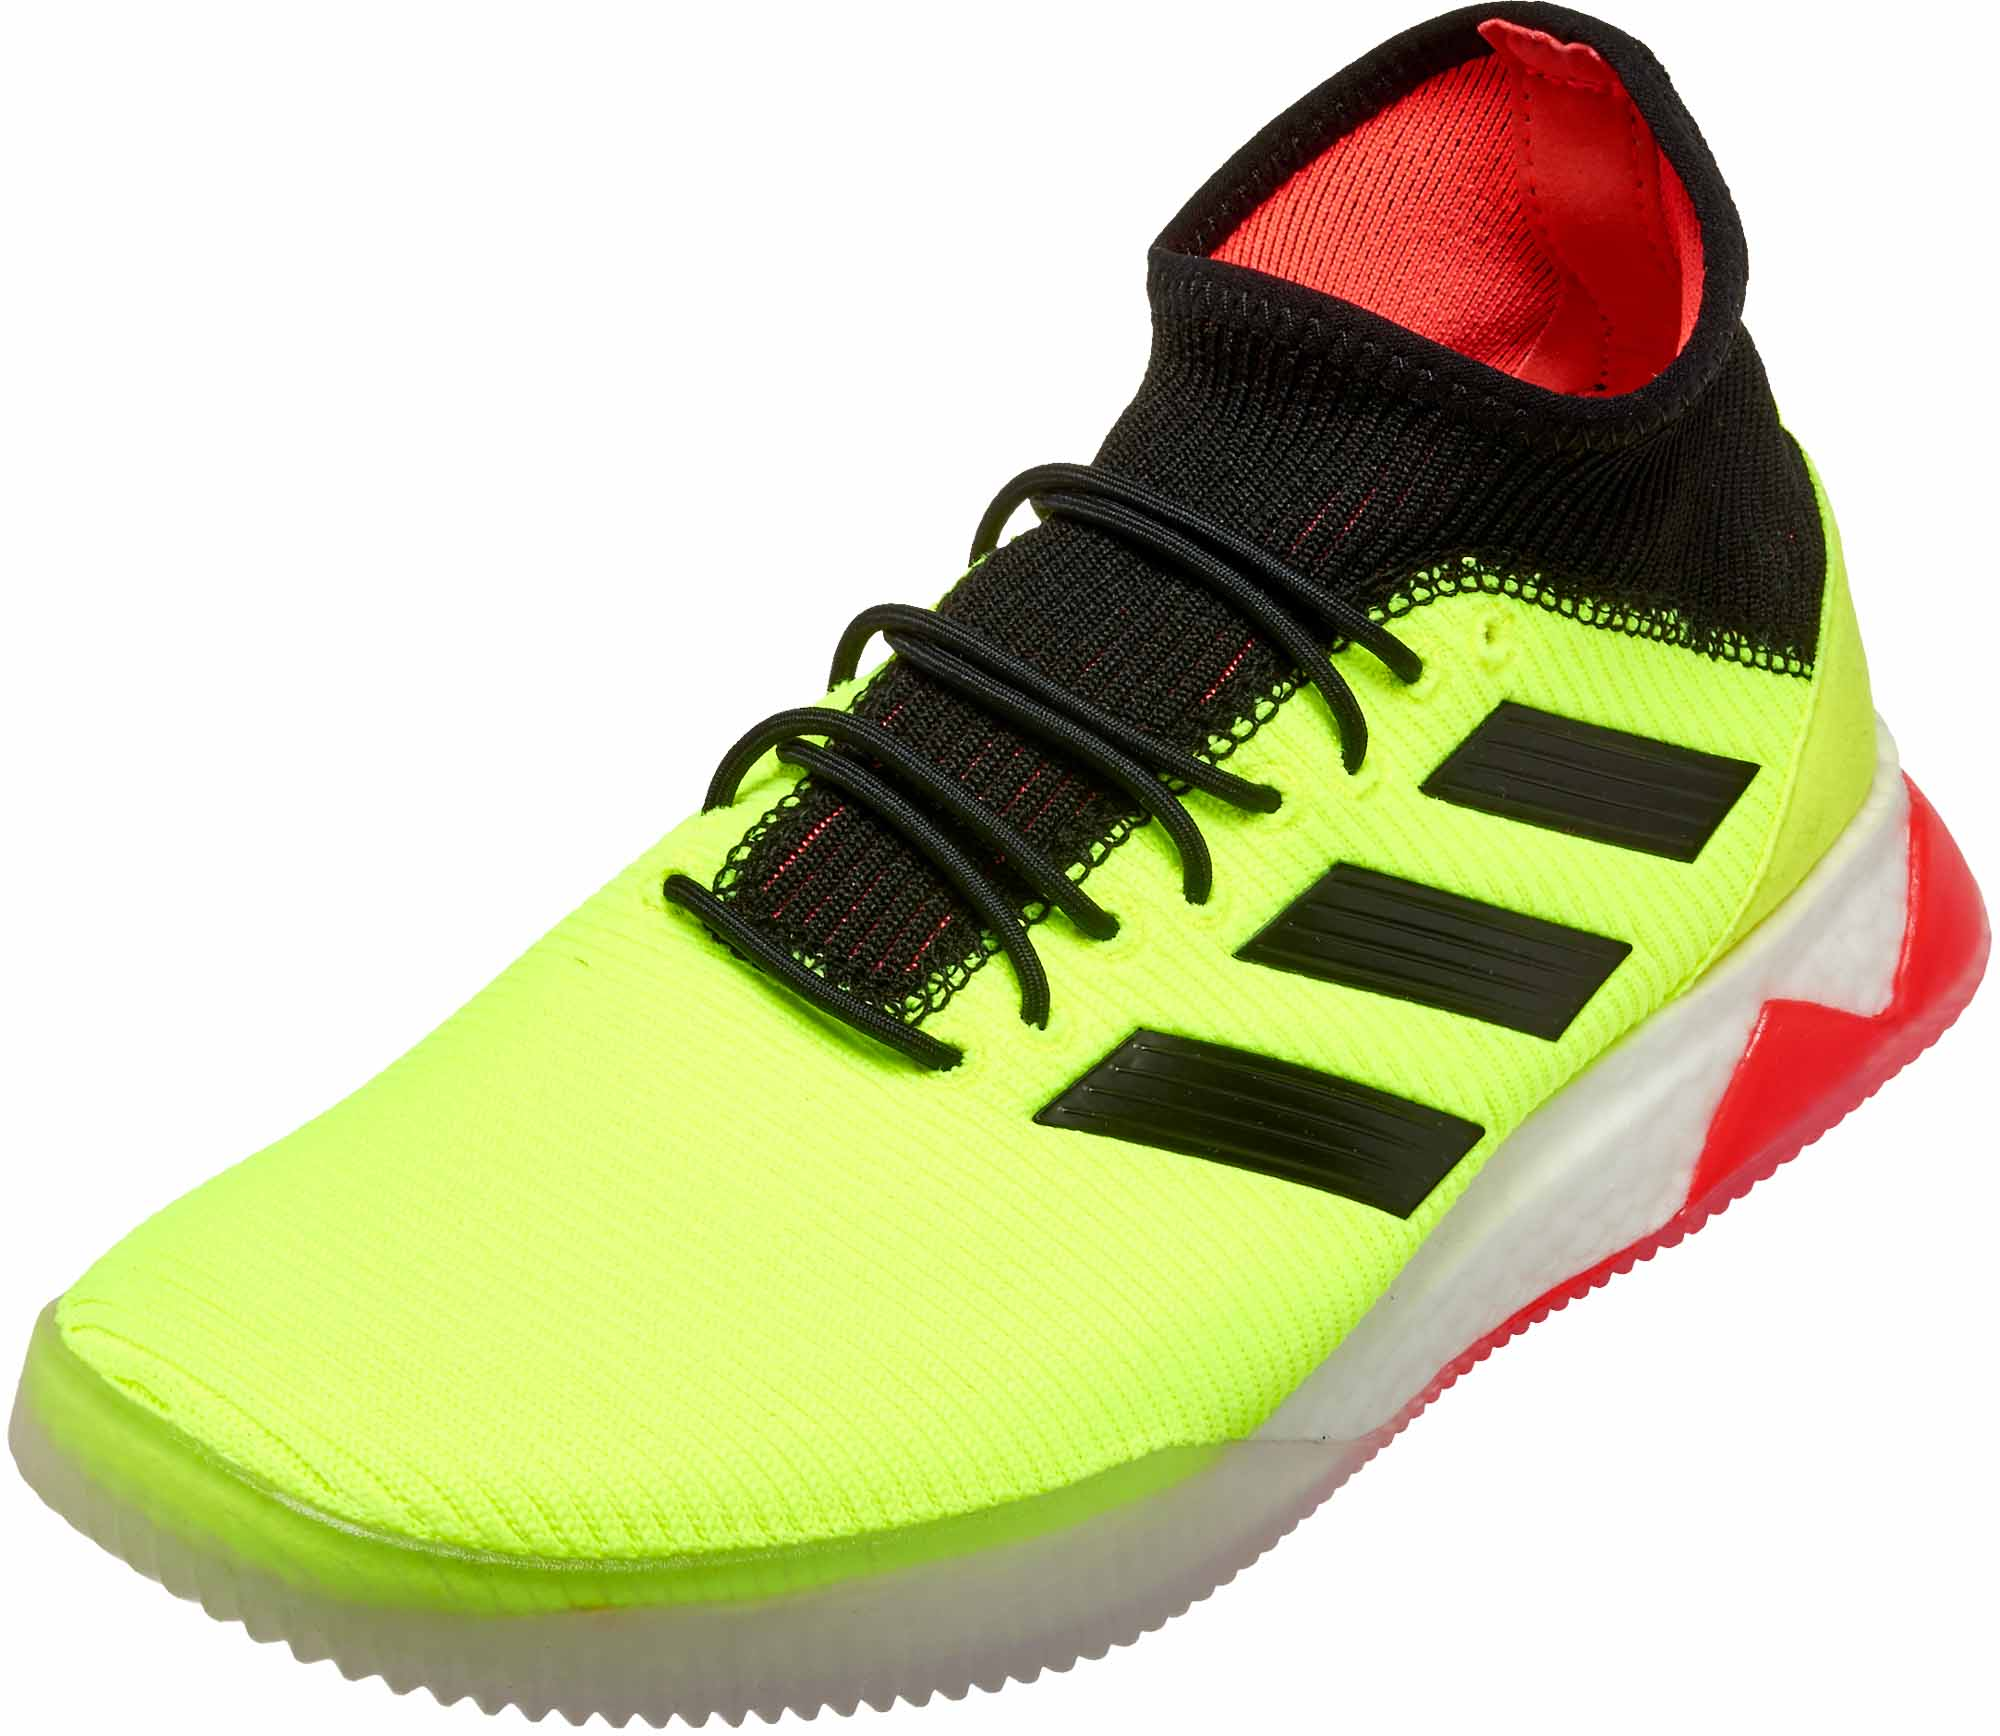 adidas Predator Tango 18.1 TR Solar YellowBlackSolar Red